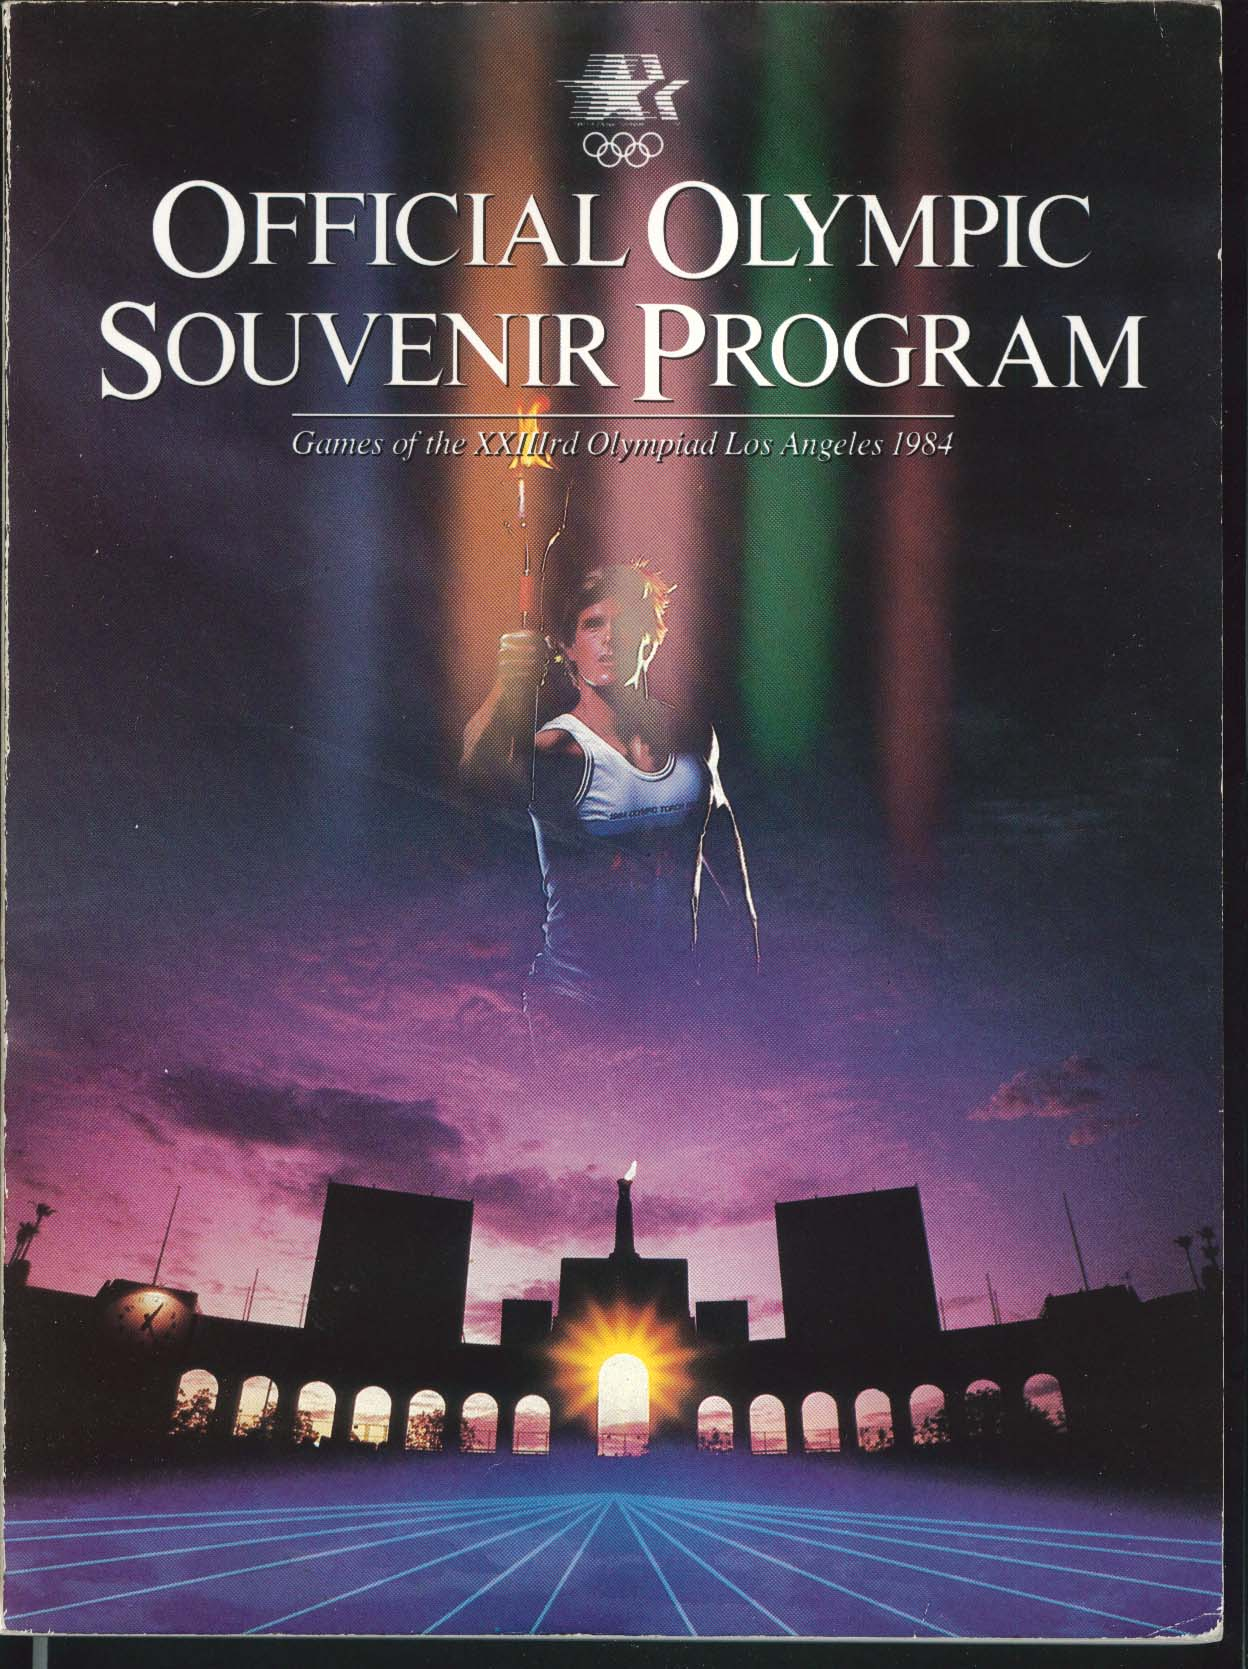 Official Olympic Souvenir Program 33rd Olympiad Los Angeles 1984